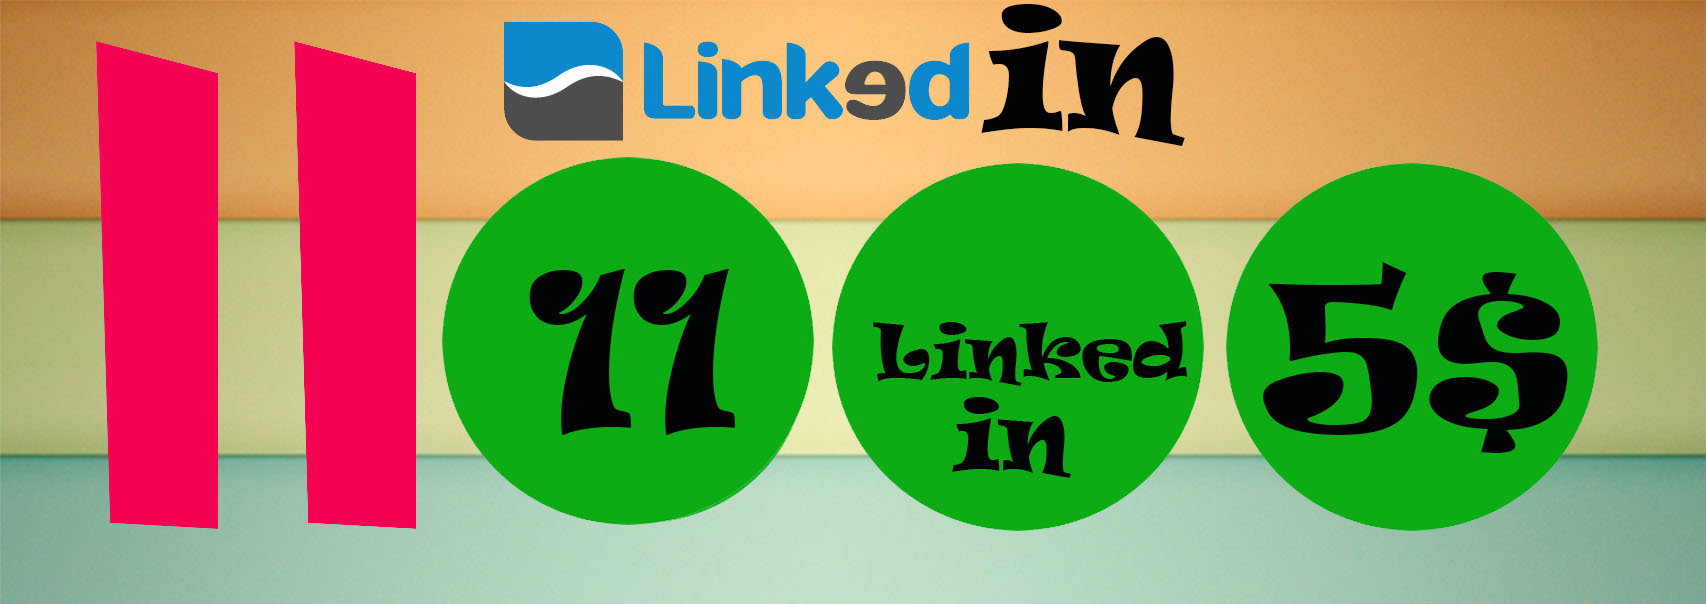 11000 Linkedin Share Only $5